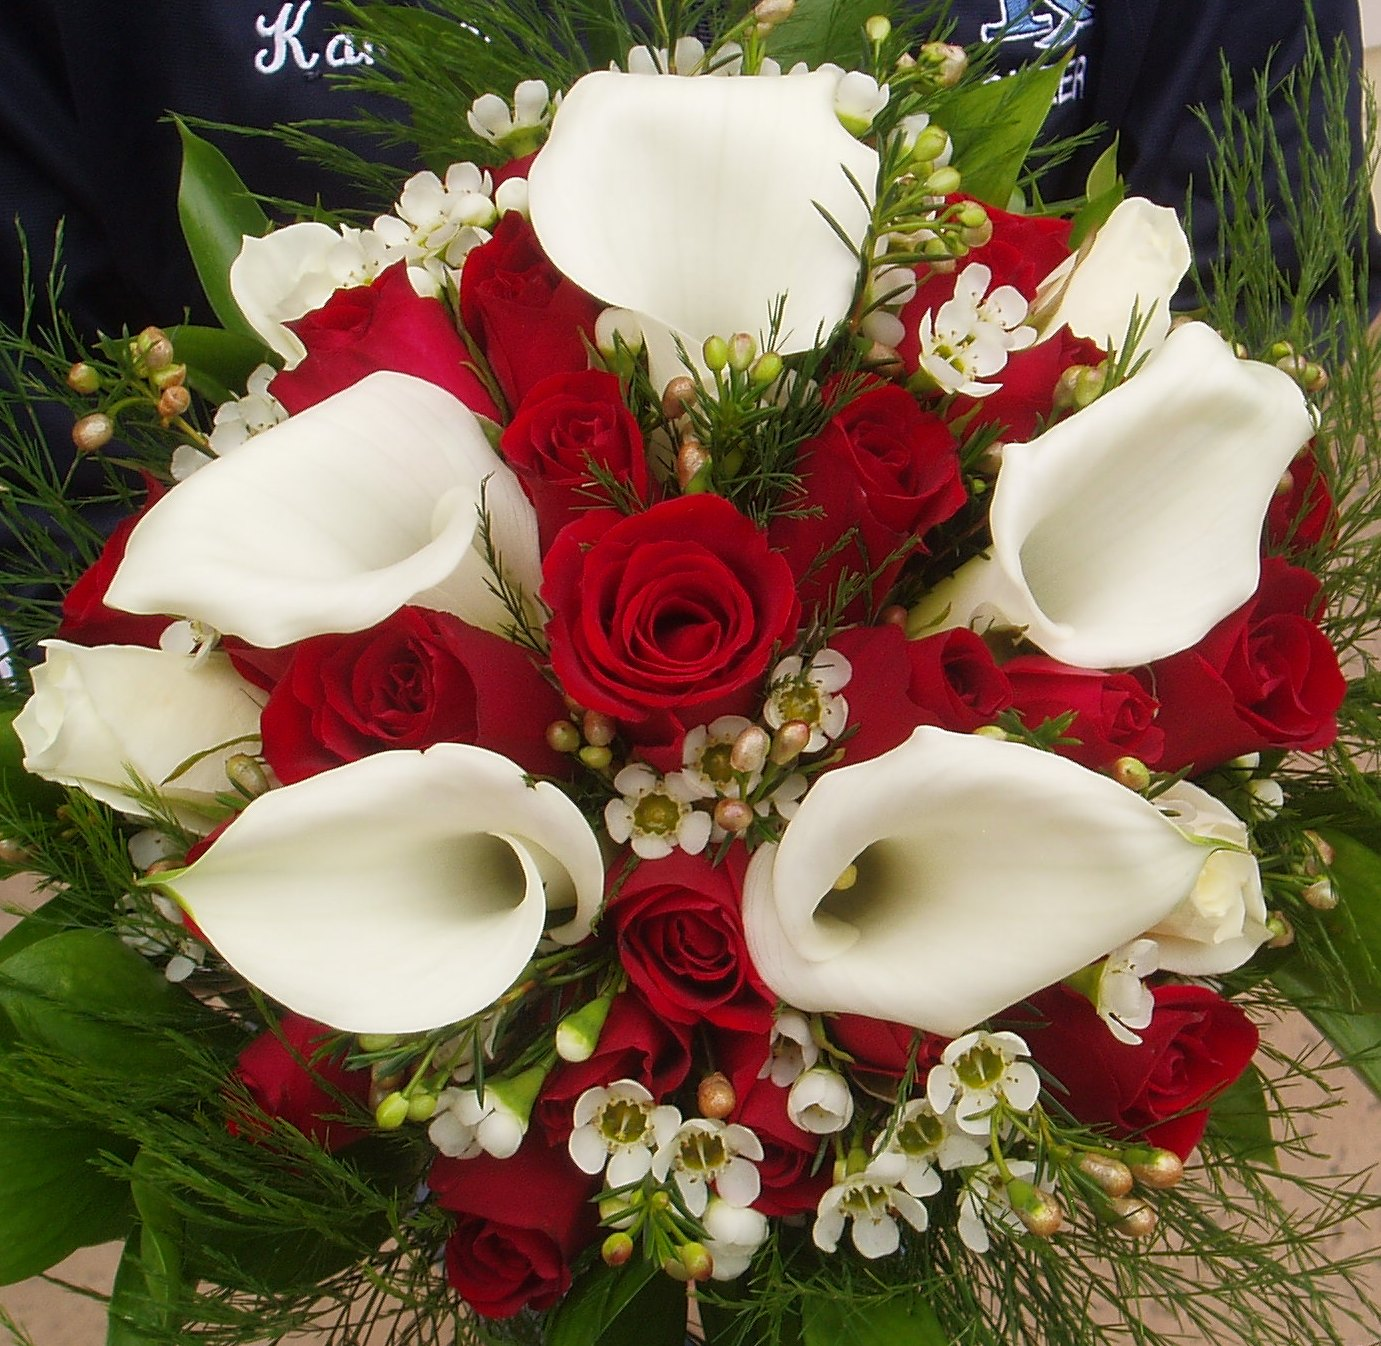 Wedding Bridal Flowers: Wedding Decor: 'Calla Lily Wedding Flowers' Decorate In A